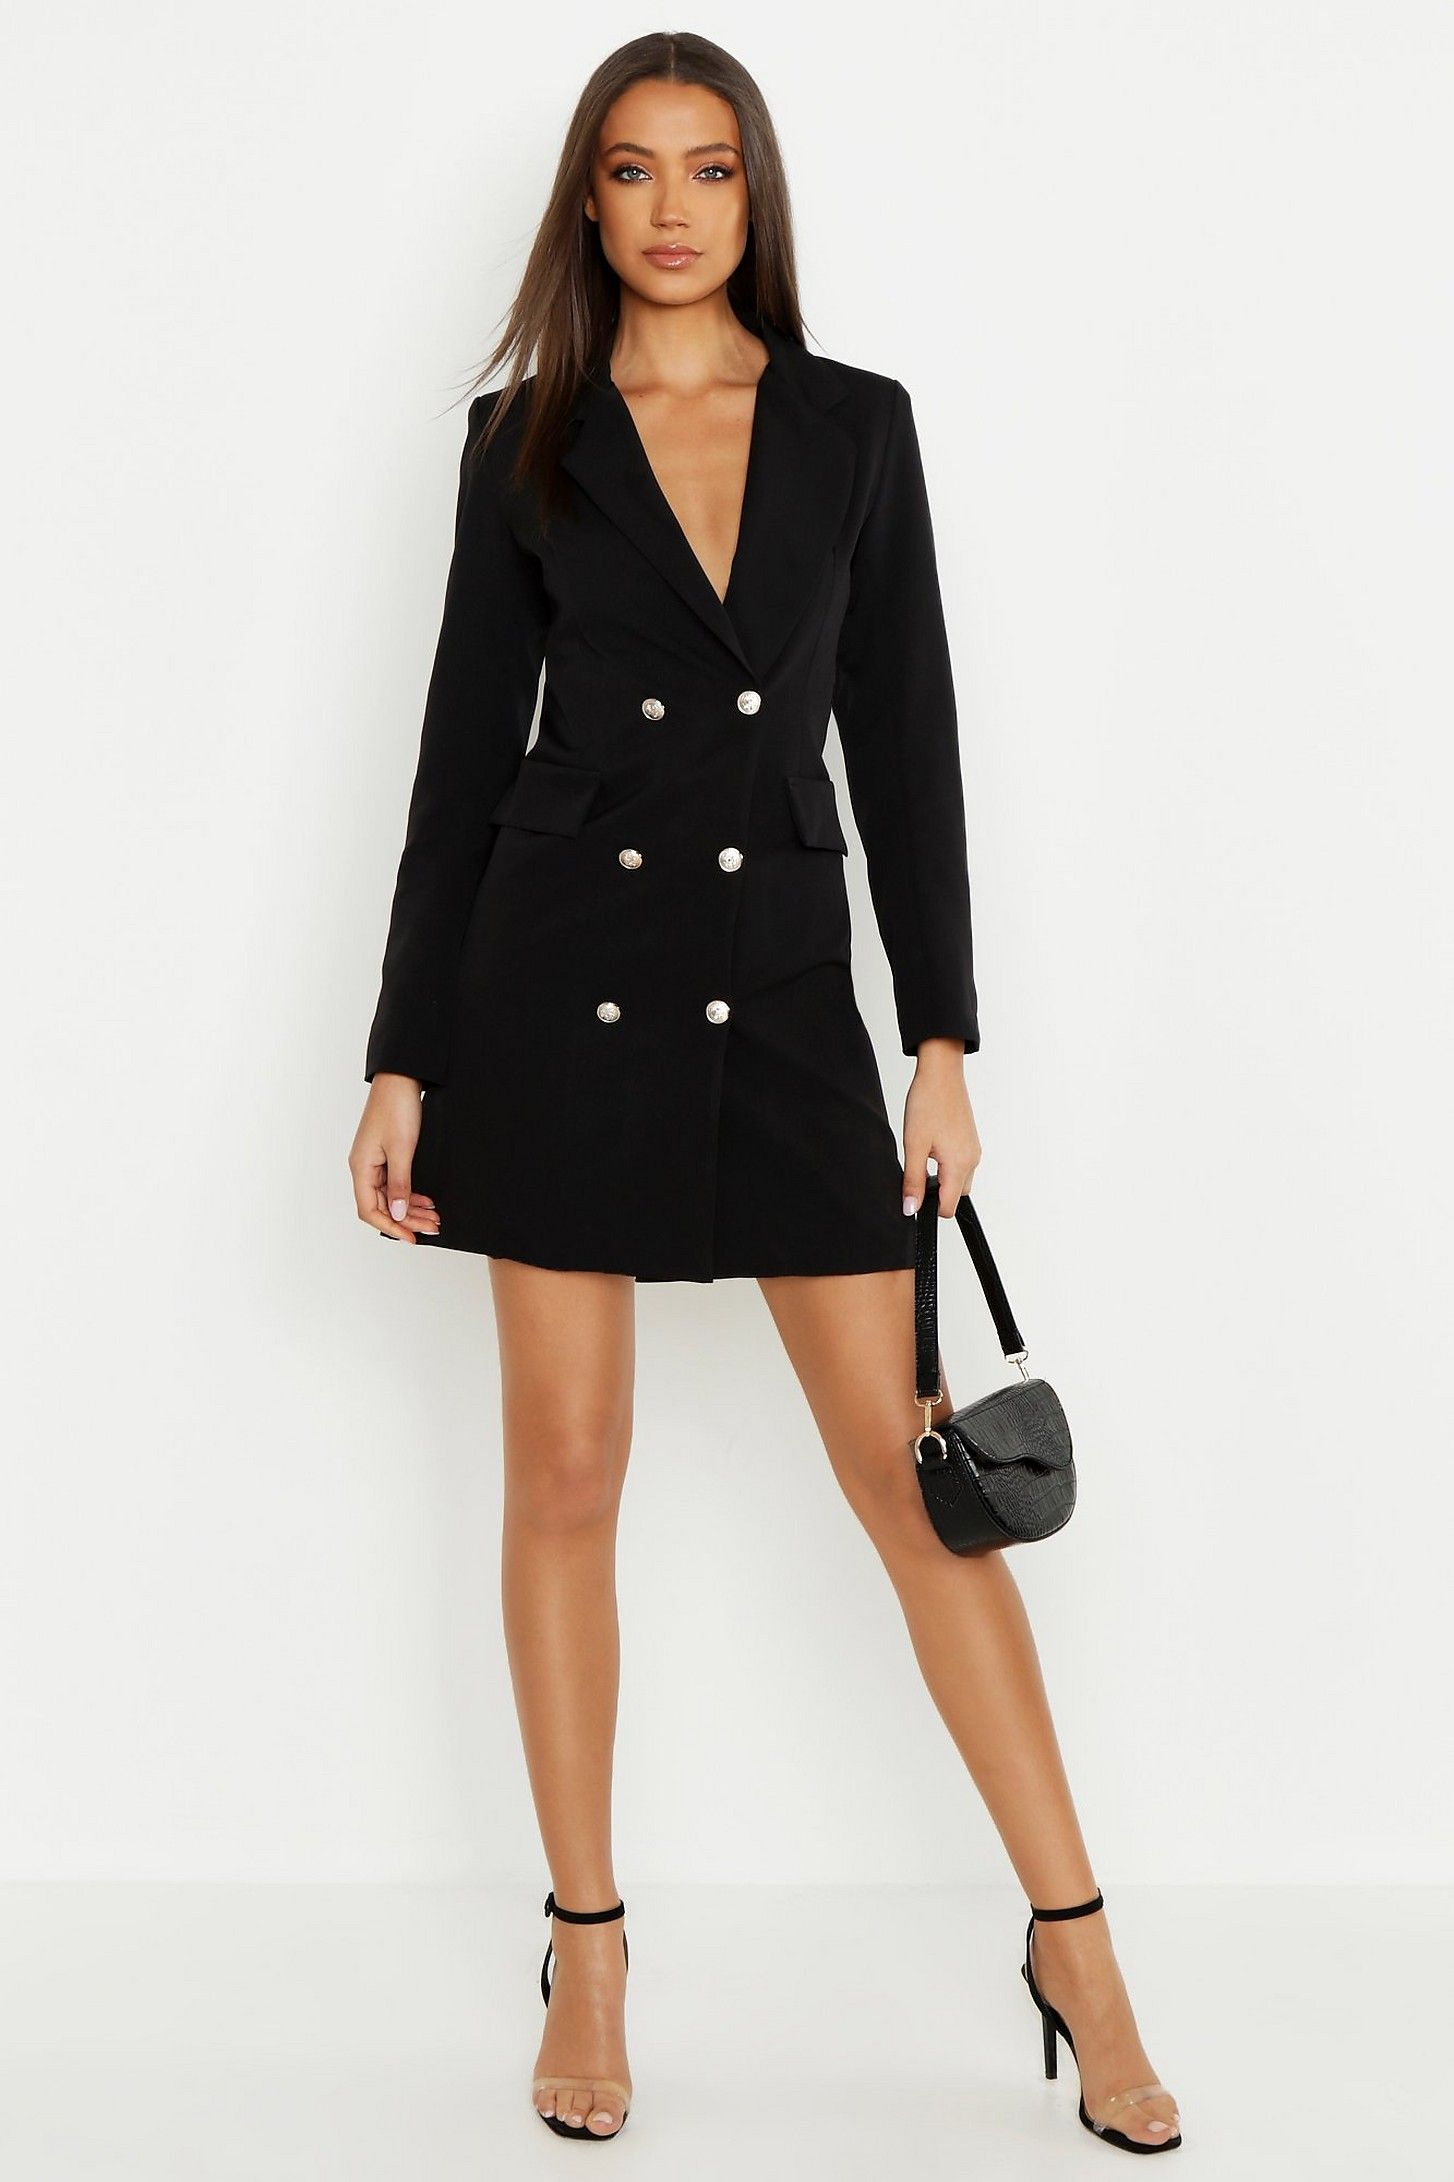 Tall Blazer Dress Boohoo Blazer Dress Blazer Dress Outfits Clothes [ 2182 x 1454 Pixel ]